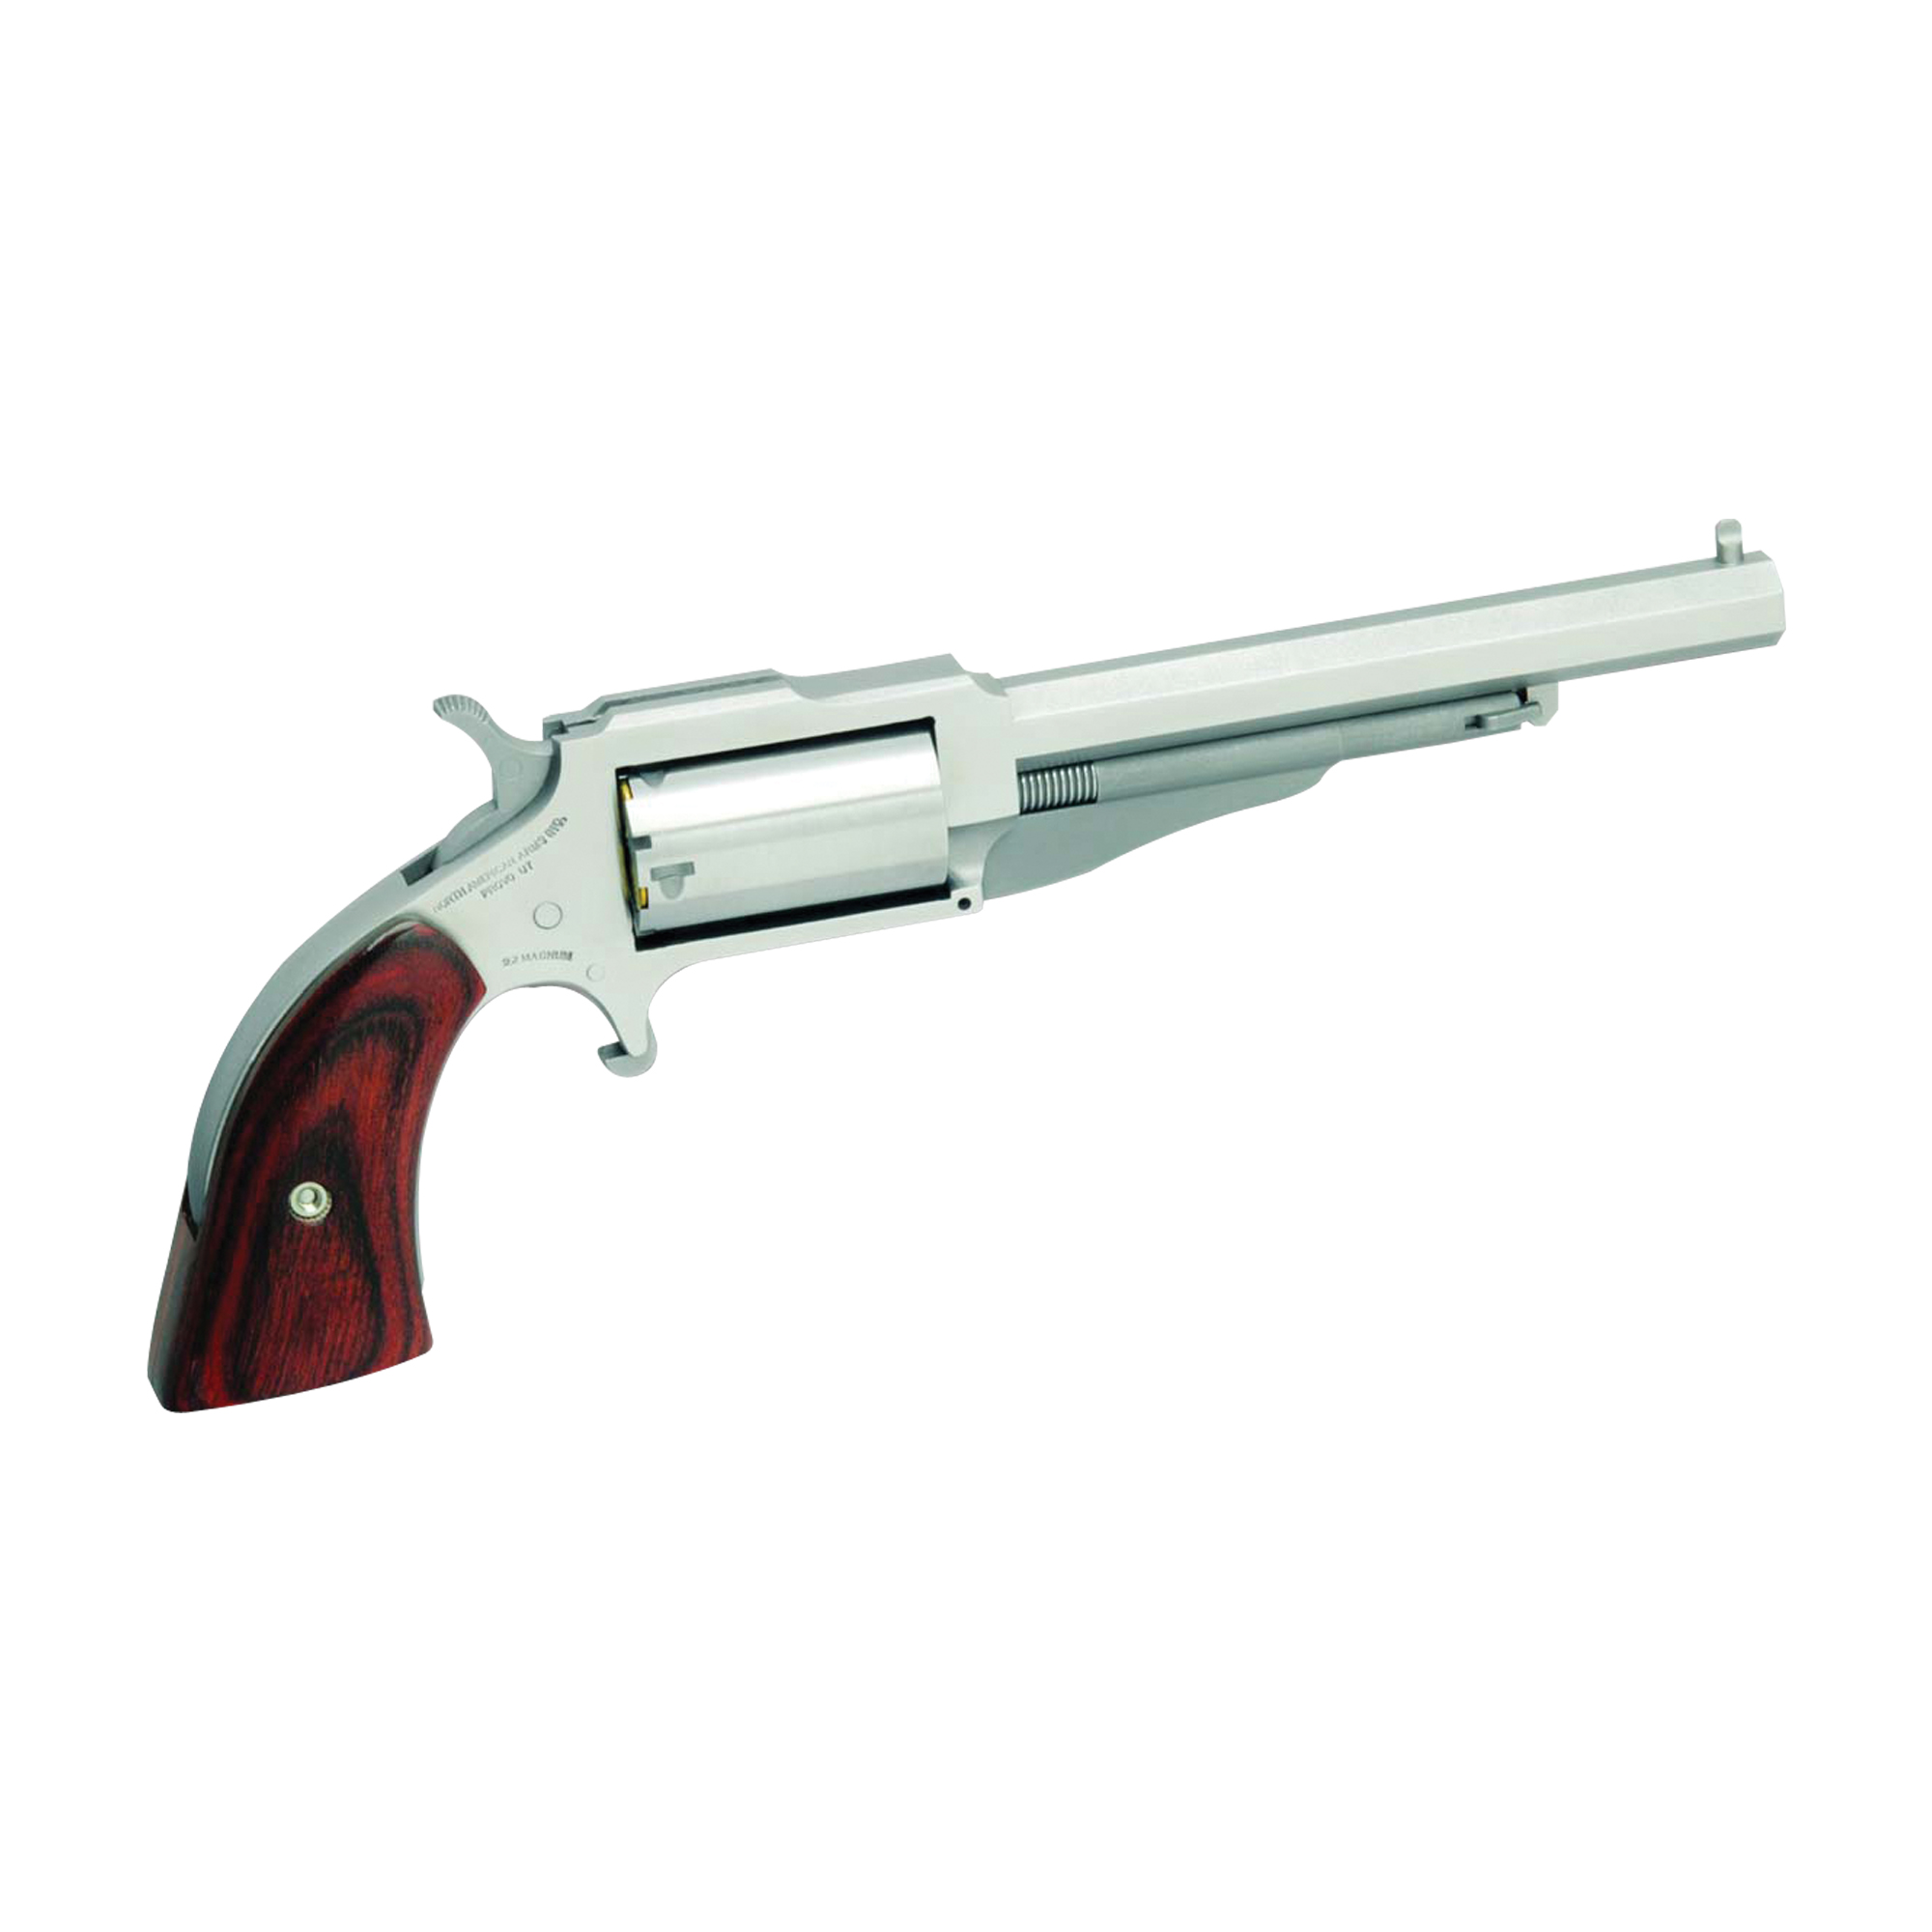 """""""The Earl"""" is a five-shot"""" single action"""" 1860's- styled mini- revolver chambered in 22 magnum. Named after the NAA gunsmith who originally developed the product"""" with its faux loading lever (which secures the cylinder pin)"""" """"The Earl"""" resembles a 150-year-old percussion revolver then common in the Old West. With its heavy octagonal barrel"""" top strap channel and bead front sight"""" """"The Earl"""" could become your favorite plinker (pray for the snake"""" rodent"""" or tin can that dares cross your path!)."""